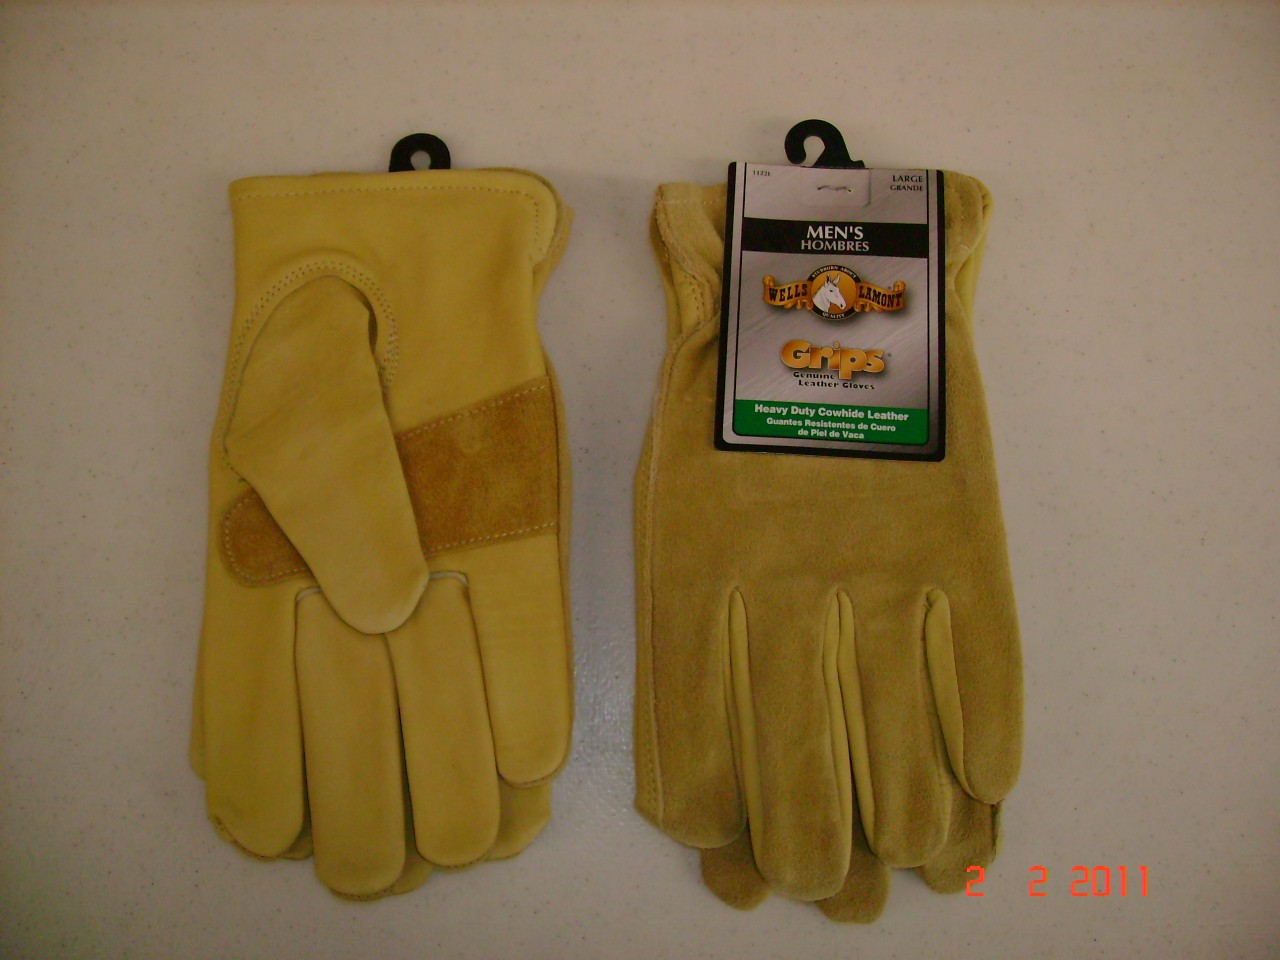 Grip Heavy Duty Cowhide Leather Gloves